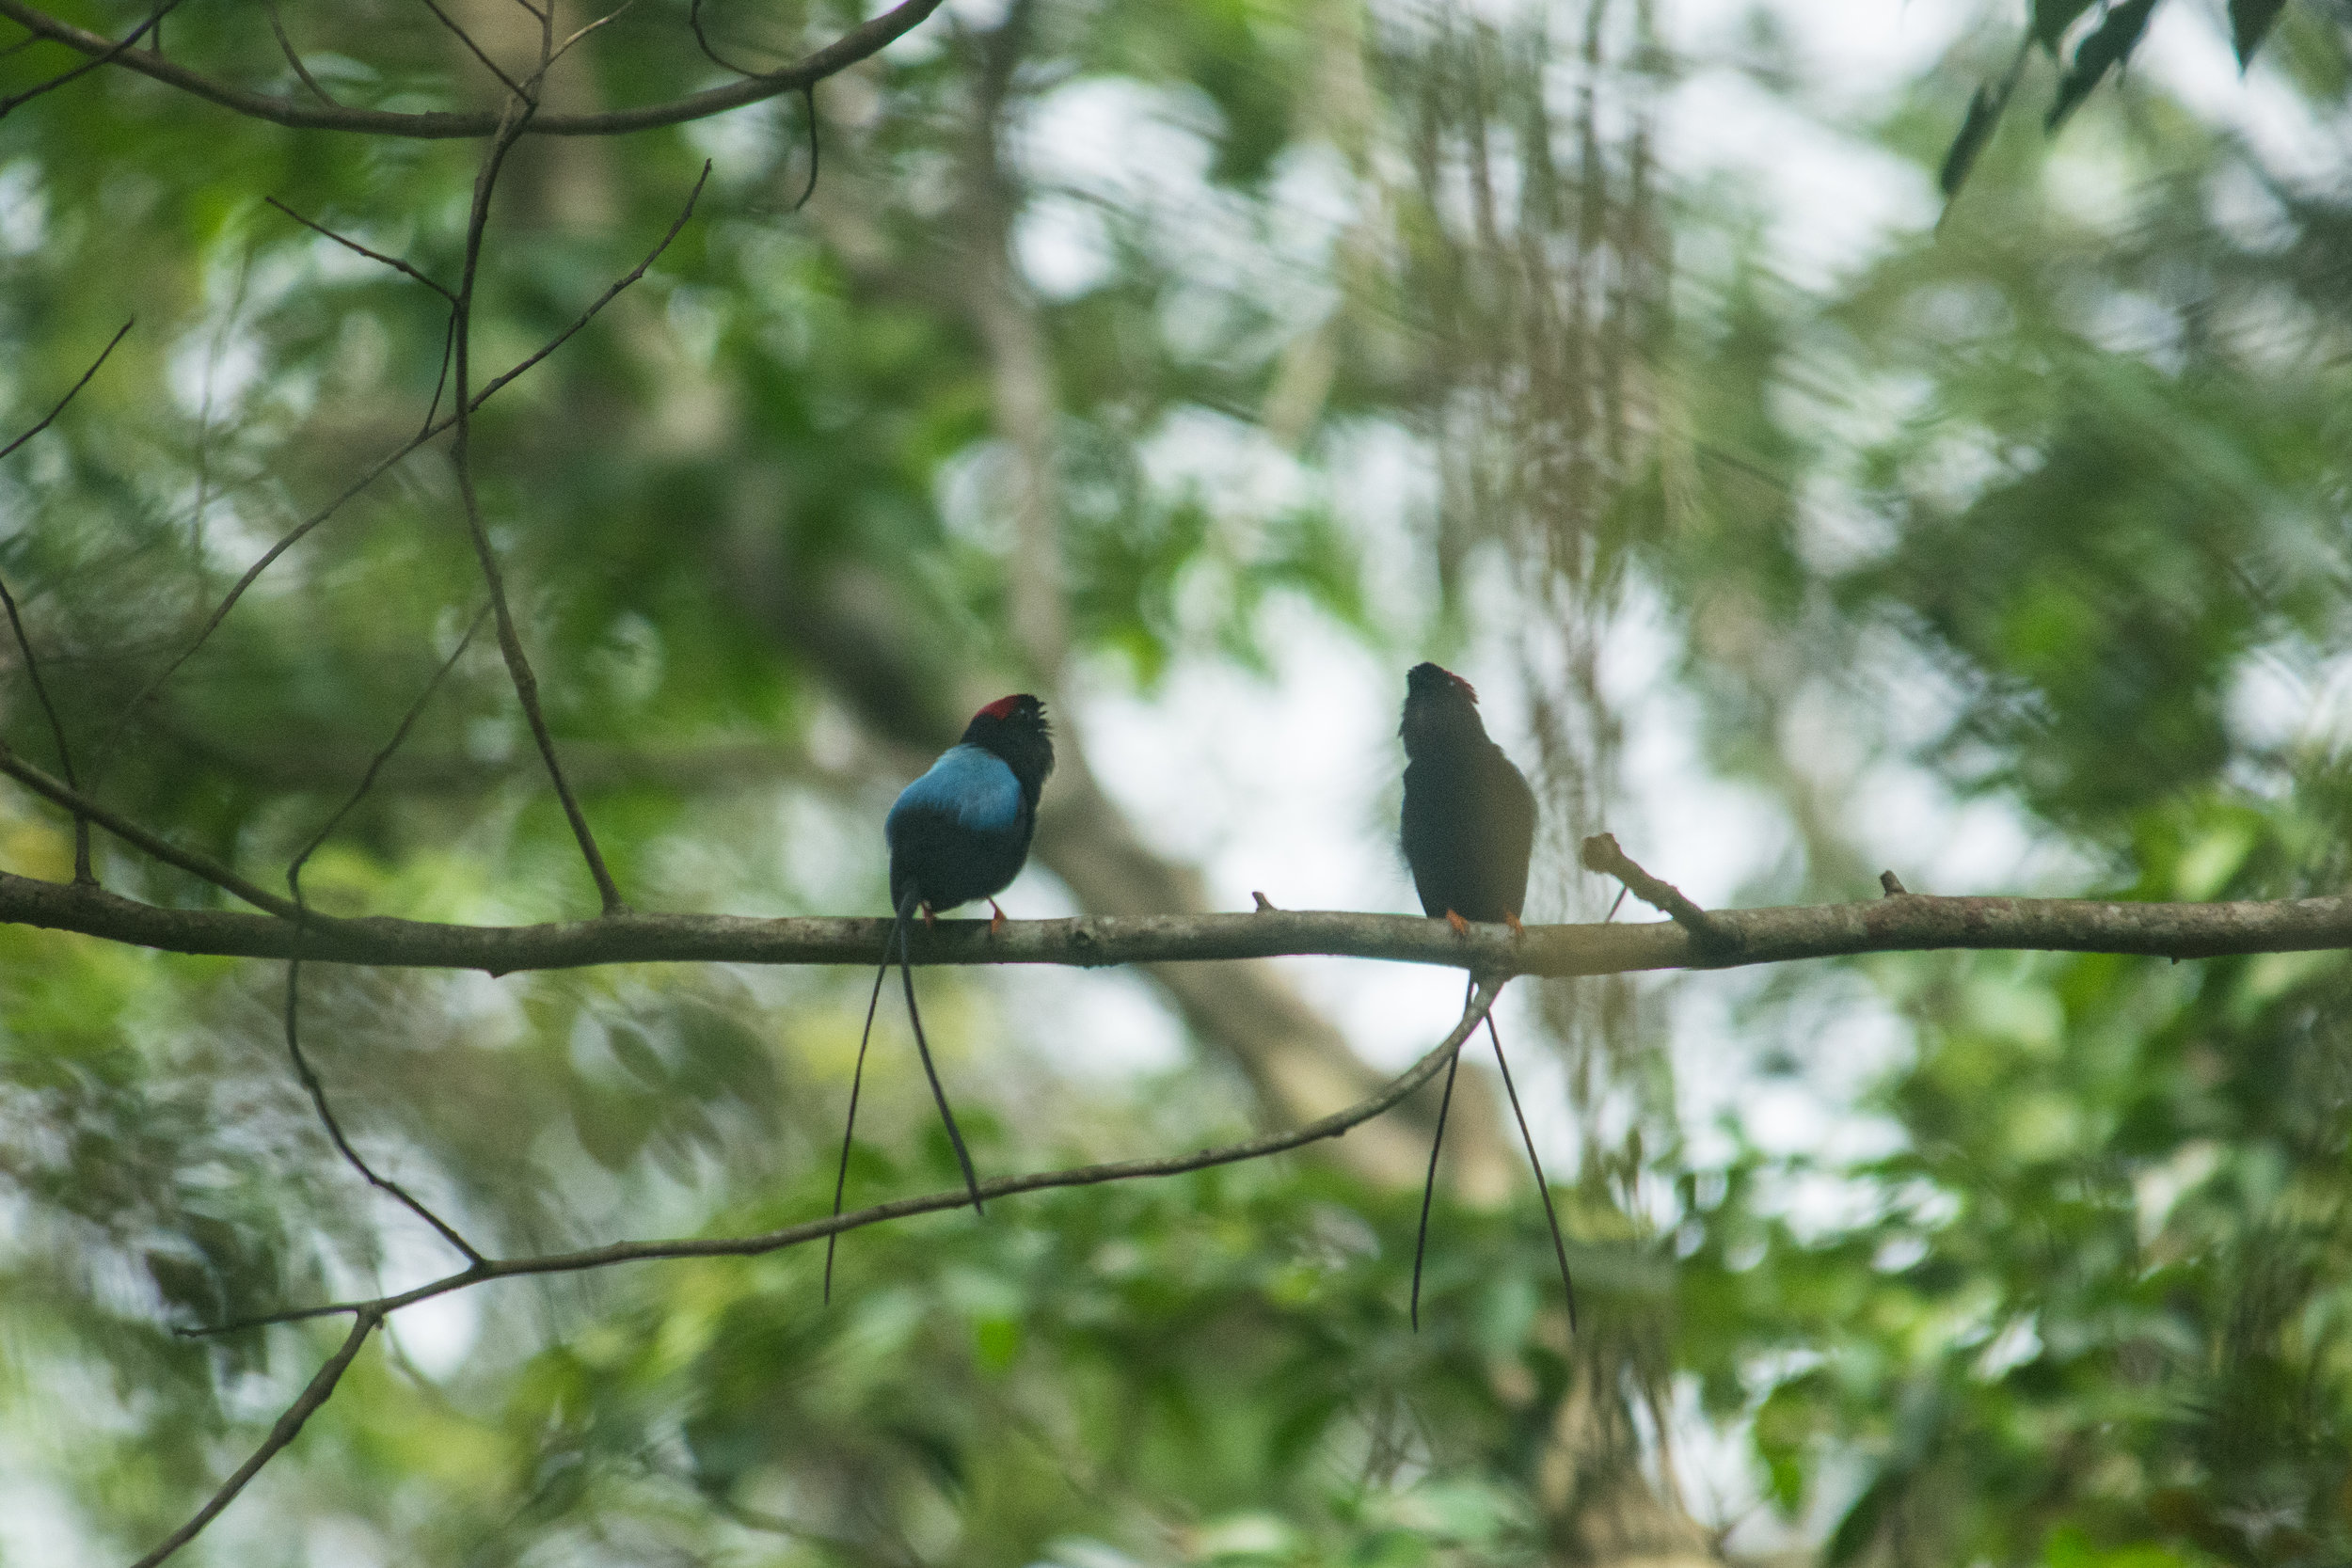 Long tailed manakins doing a courtship call are allso a common sight nearby pur plantation during April, our small family operation main concern is to be able to not only coexist but to benefit nature with reforestation proyects and also by protecting the land for future generations.